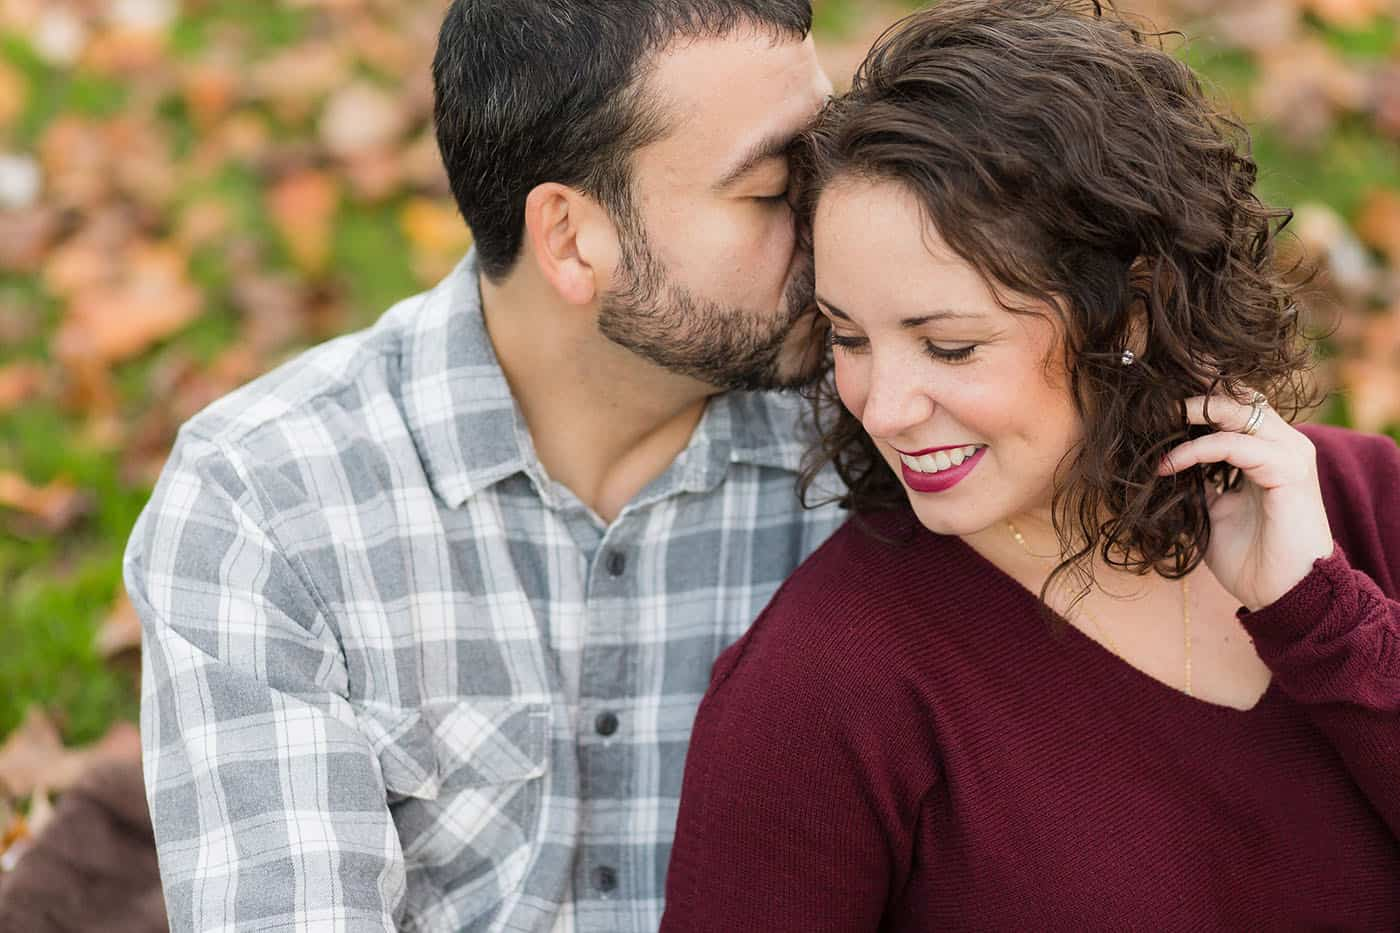 fall engagement portrait by customer service whiz cinnamon wolfe